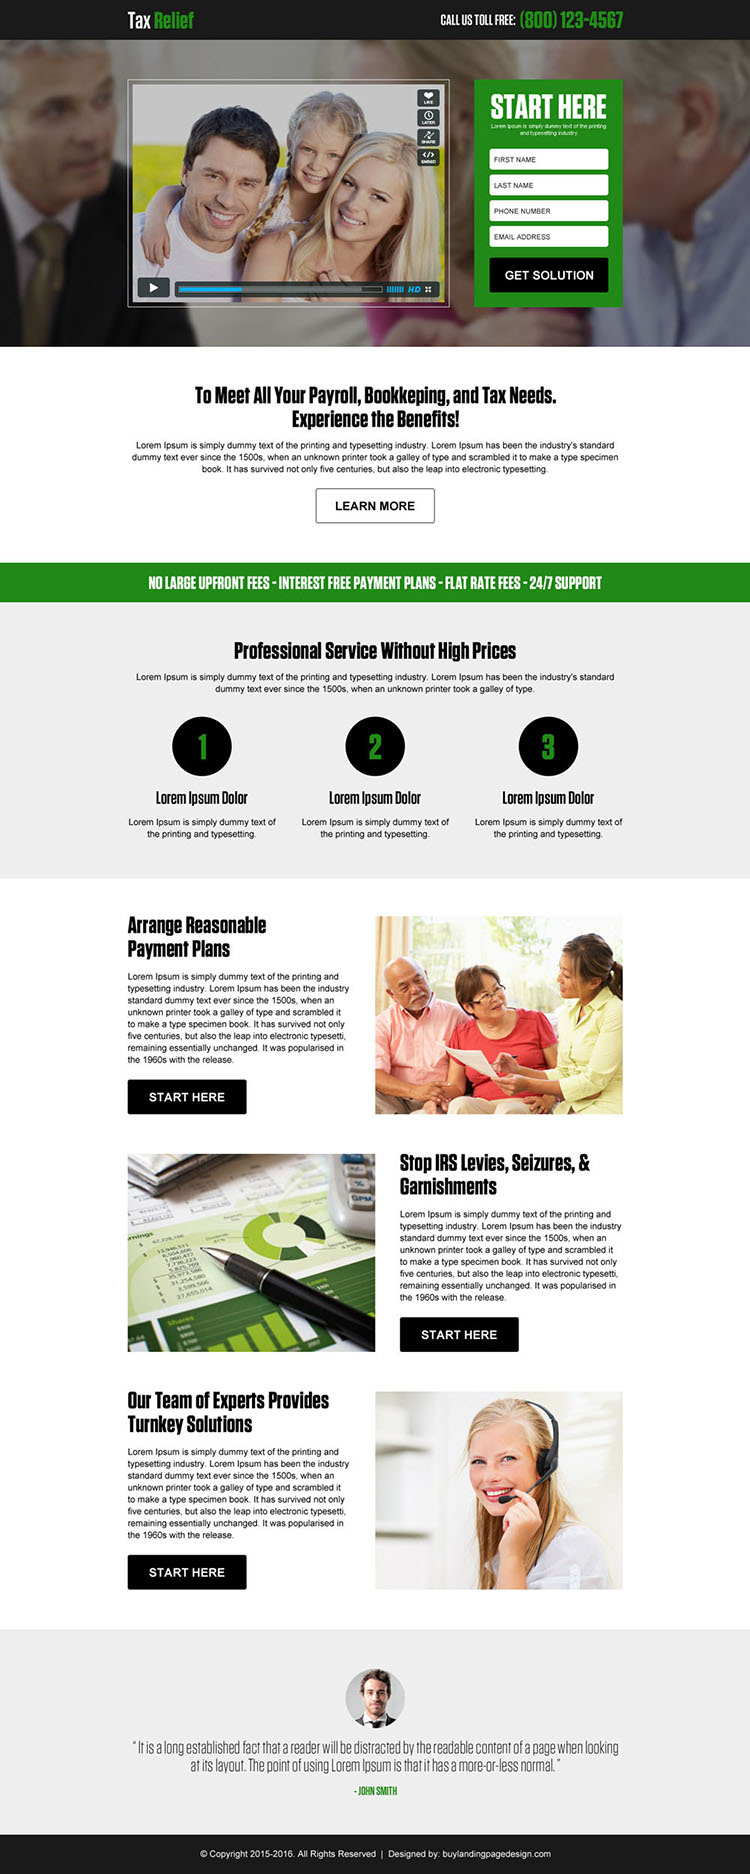 tax relief lead generating responsive video landing page design